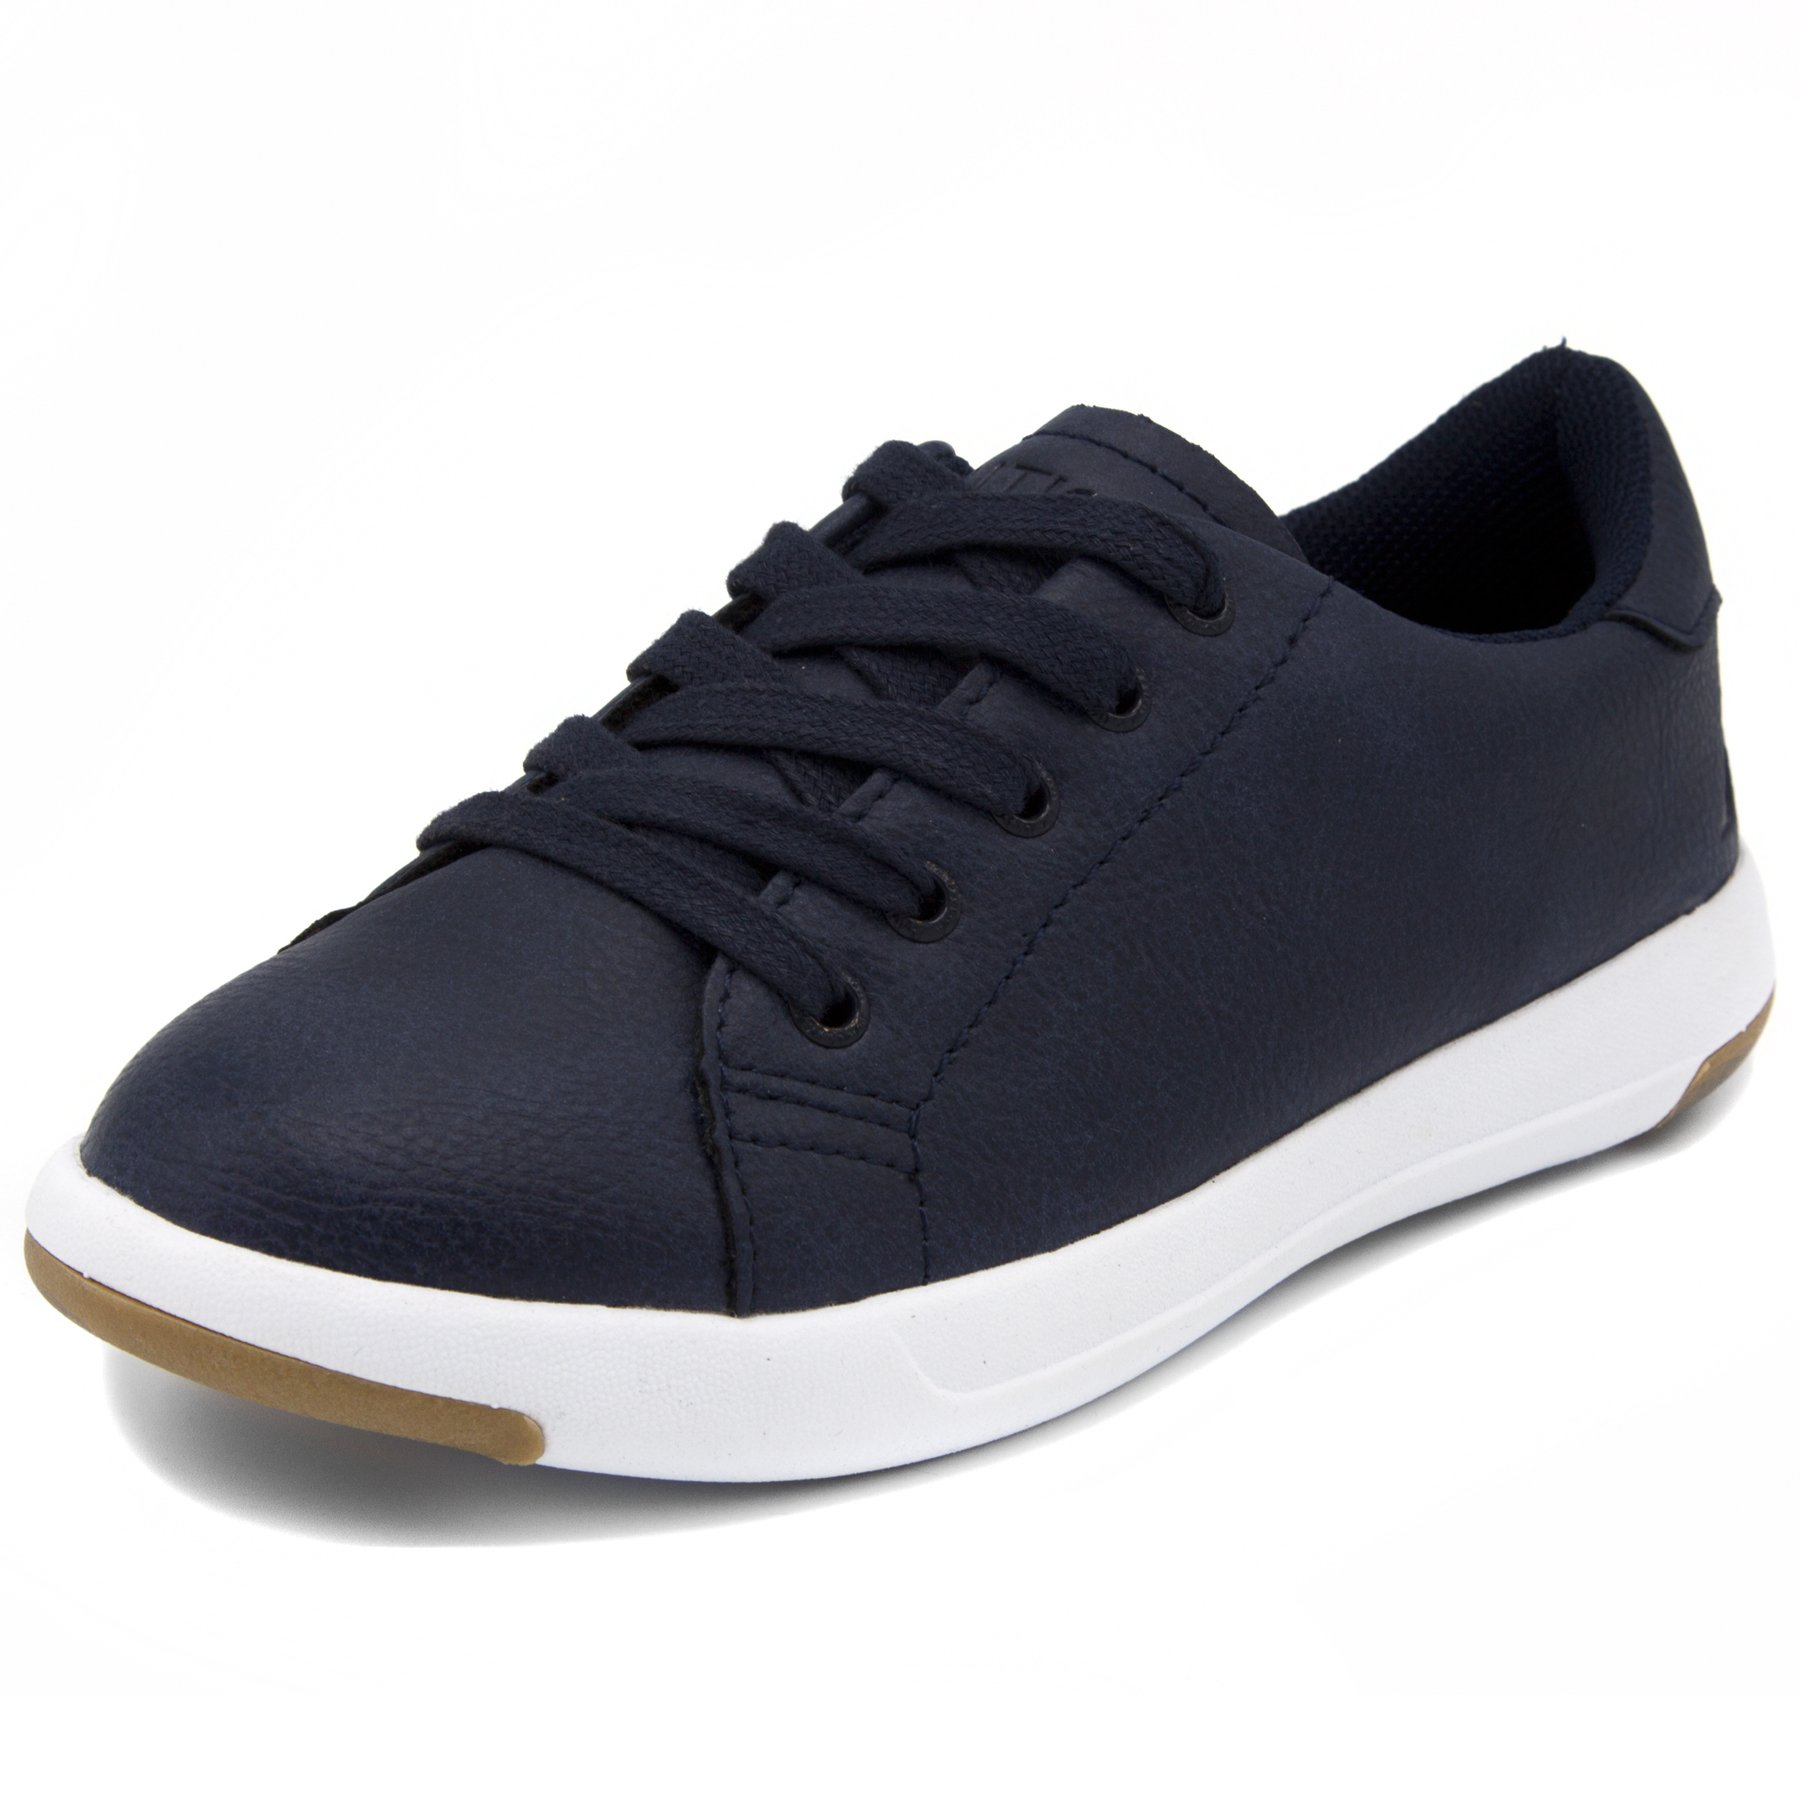 Nautica Kids Inboard Sneaker-Lace up Fashion Shoe-Navy Smooth-1